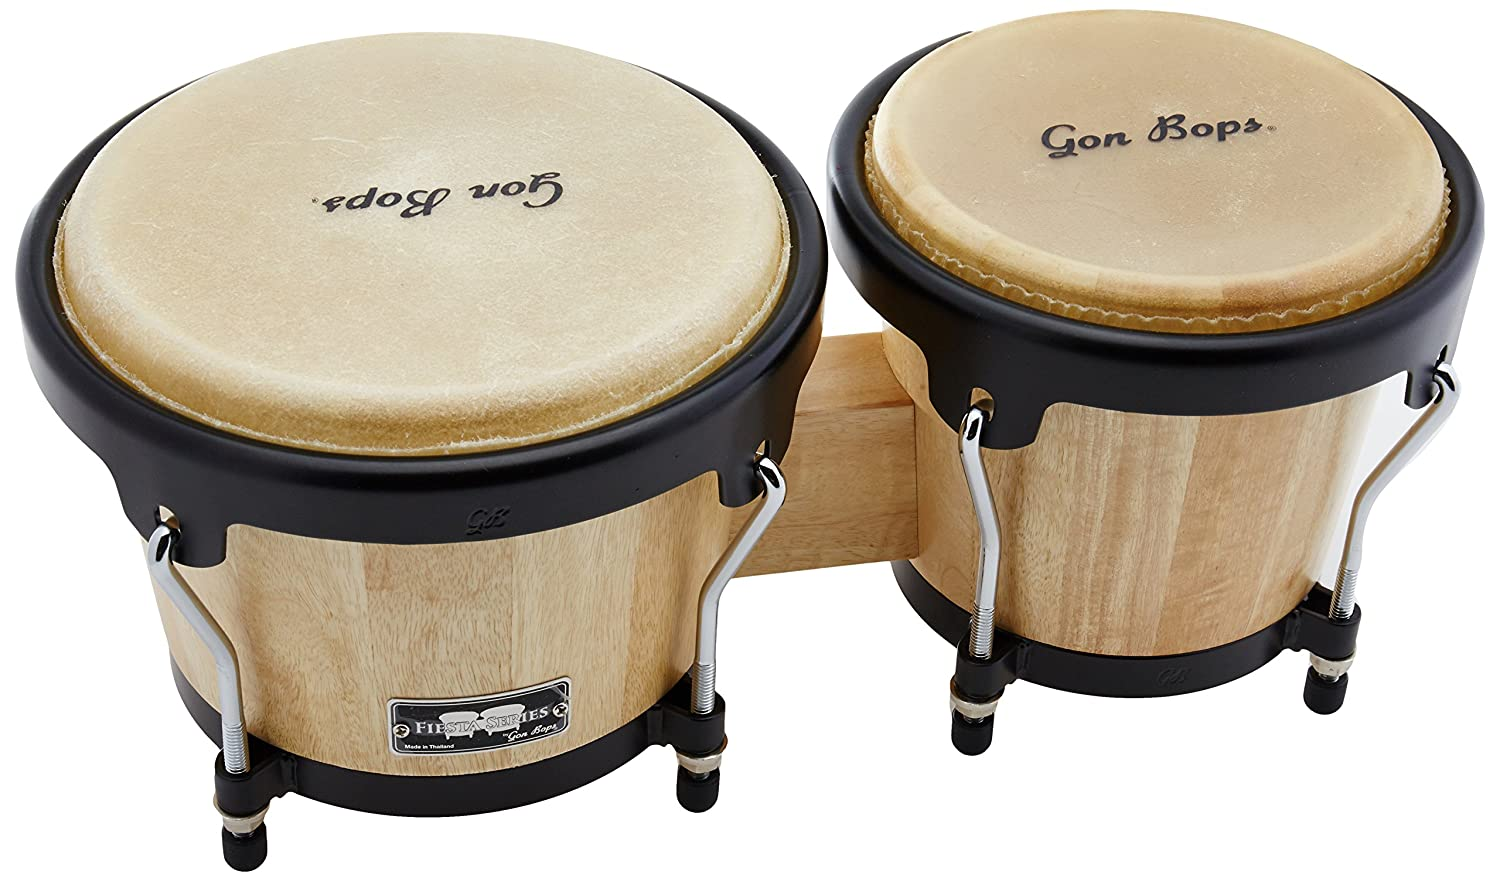 Gon Bops Fiesta Series Bongo, Natural with Black Hardware Inc. FS785N